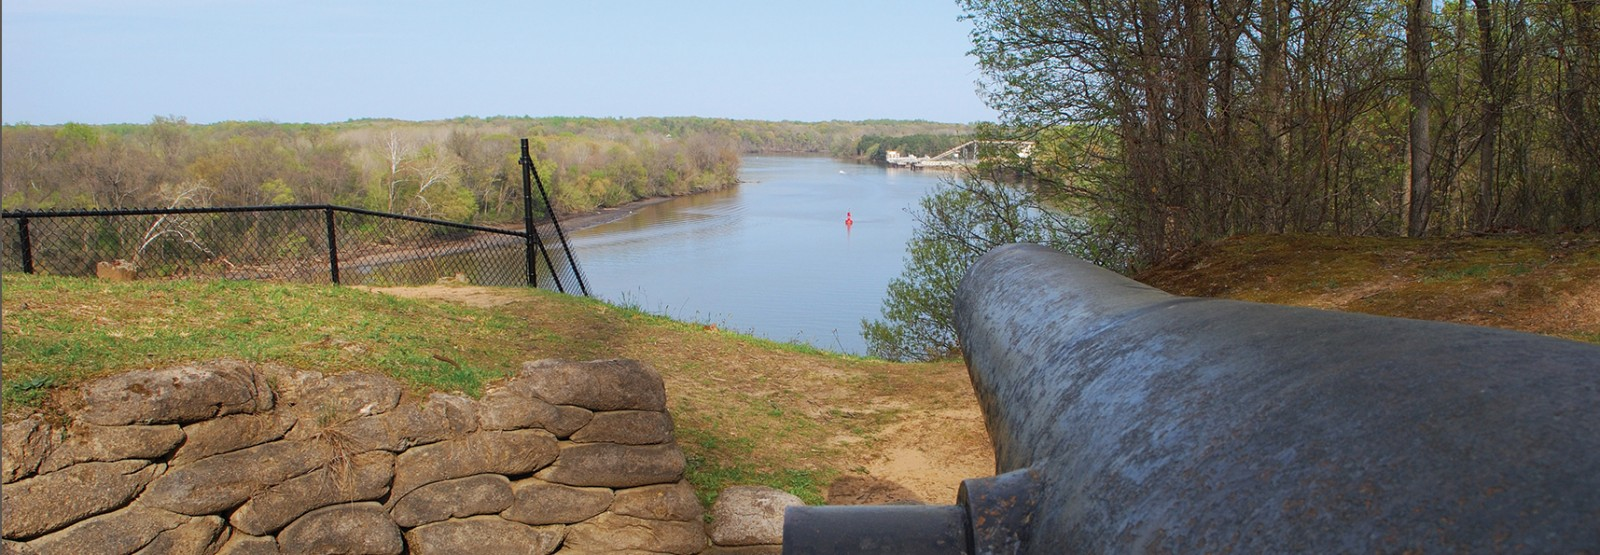 The many historical sites and parks along the James helped establish the river as America's Founding River.